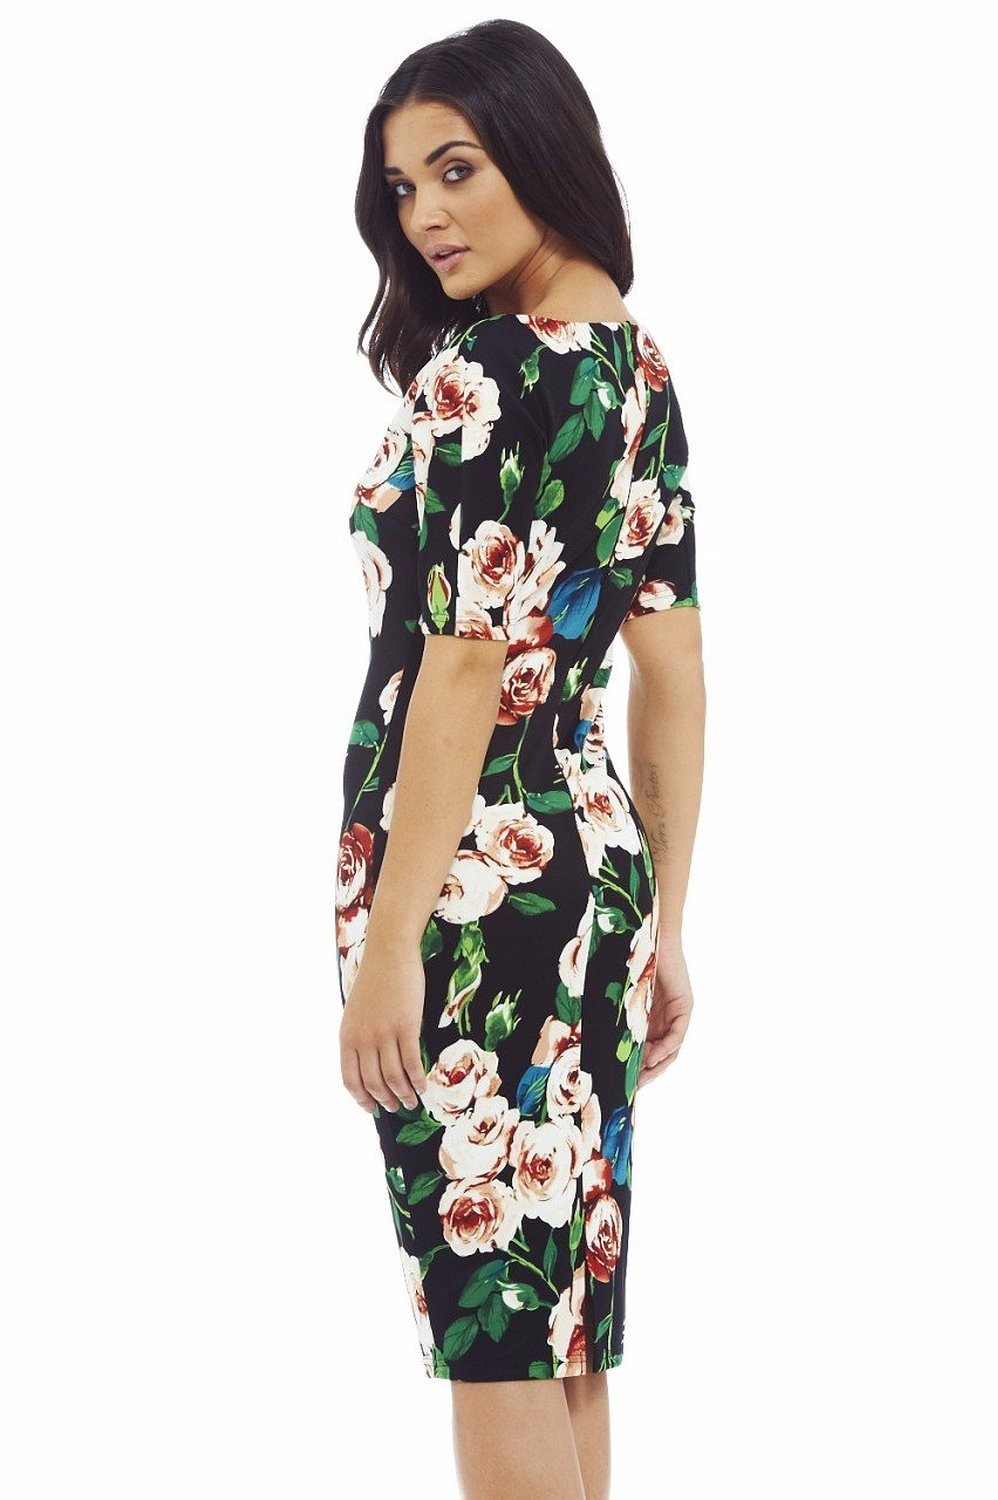 Fashion Free Shipping Designer Women Dress Elegant Floral Print Work Business Casual Party Pencil Sheath Vestidos 004